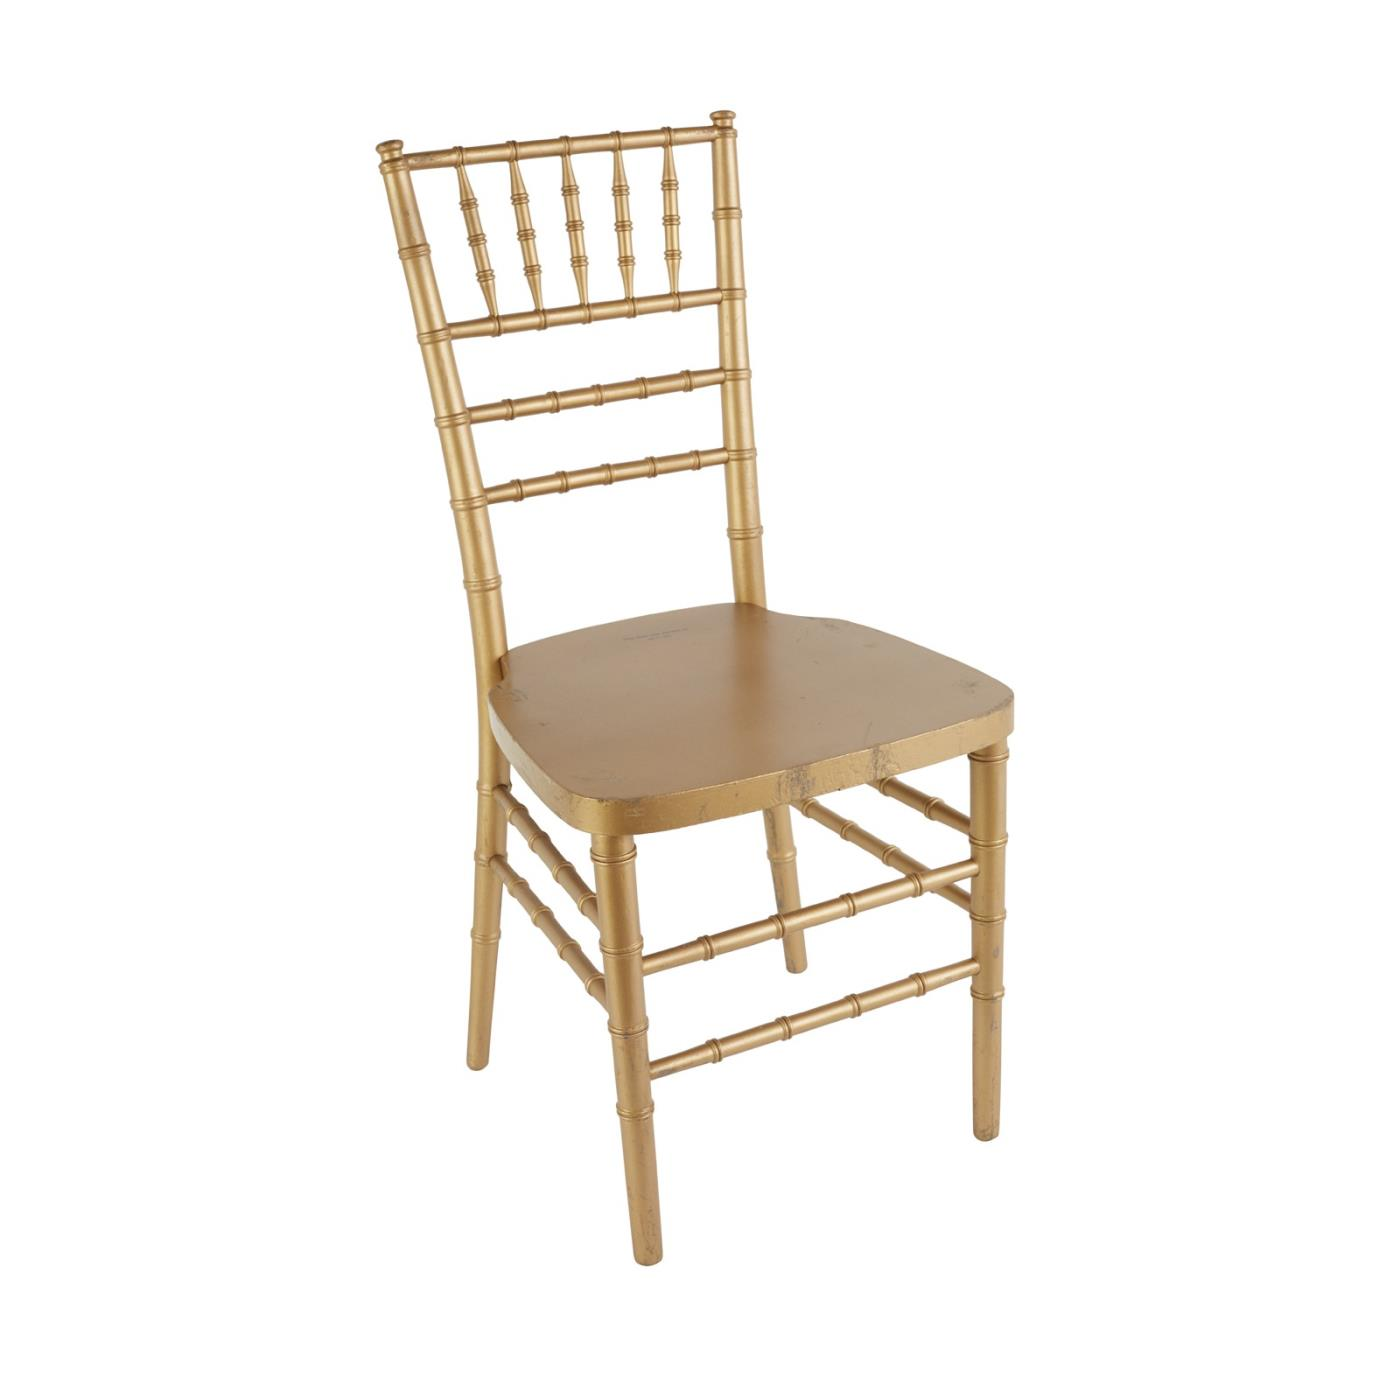 Gold Reception Chair Rentals NYC | SDPR